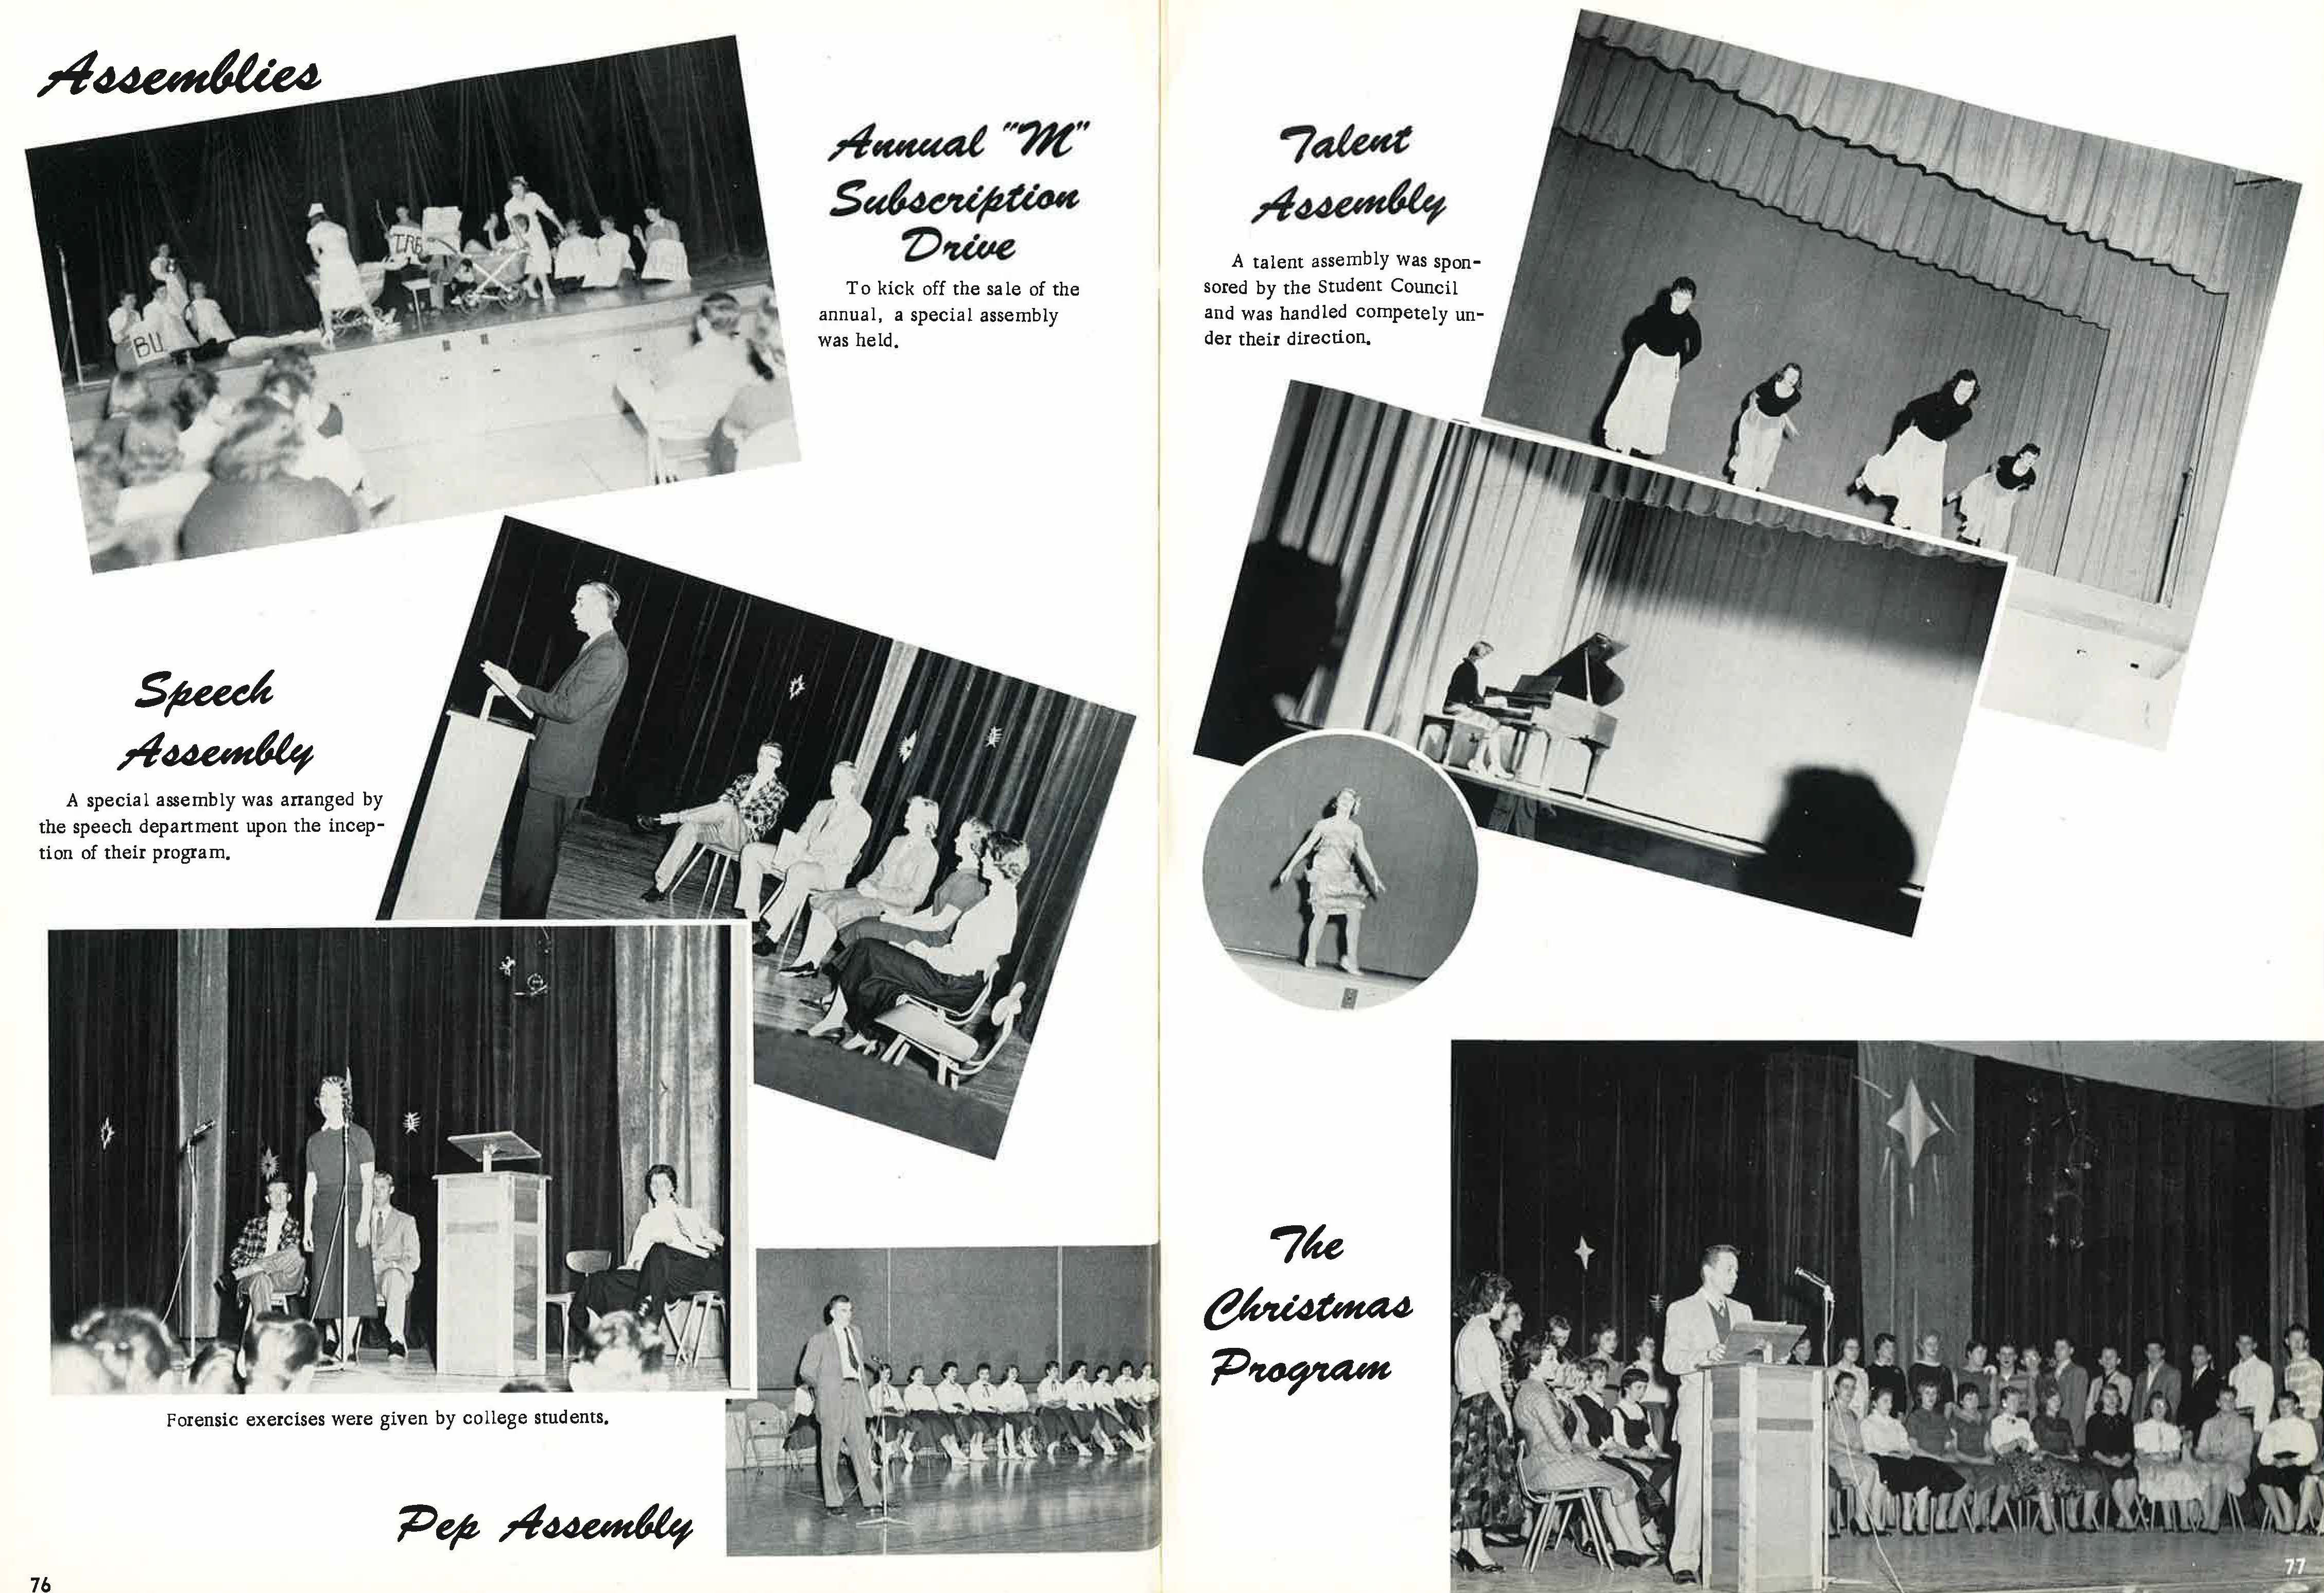 1958_Yearbook_76-77.jpg